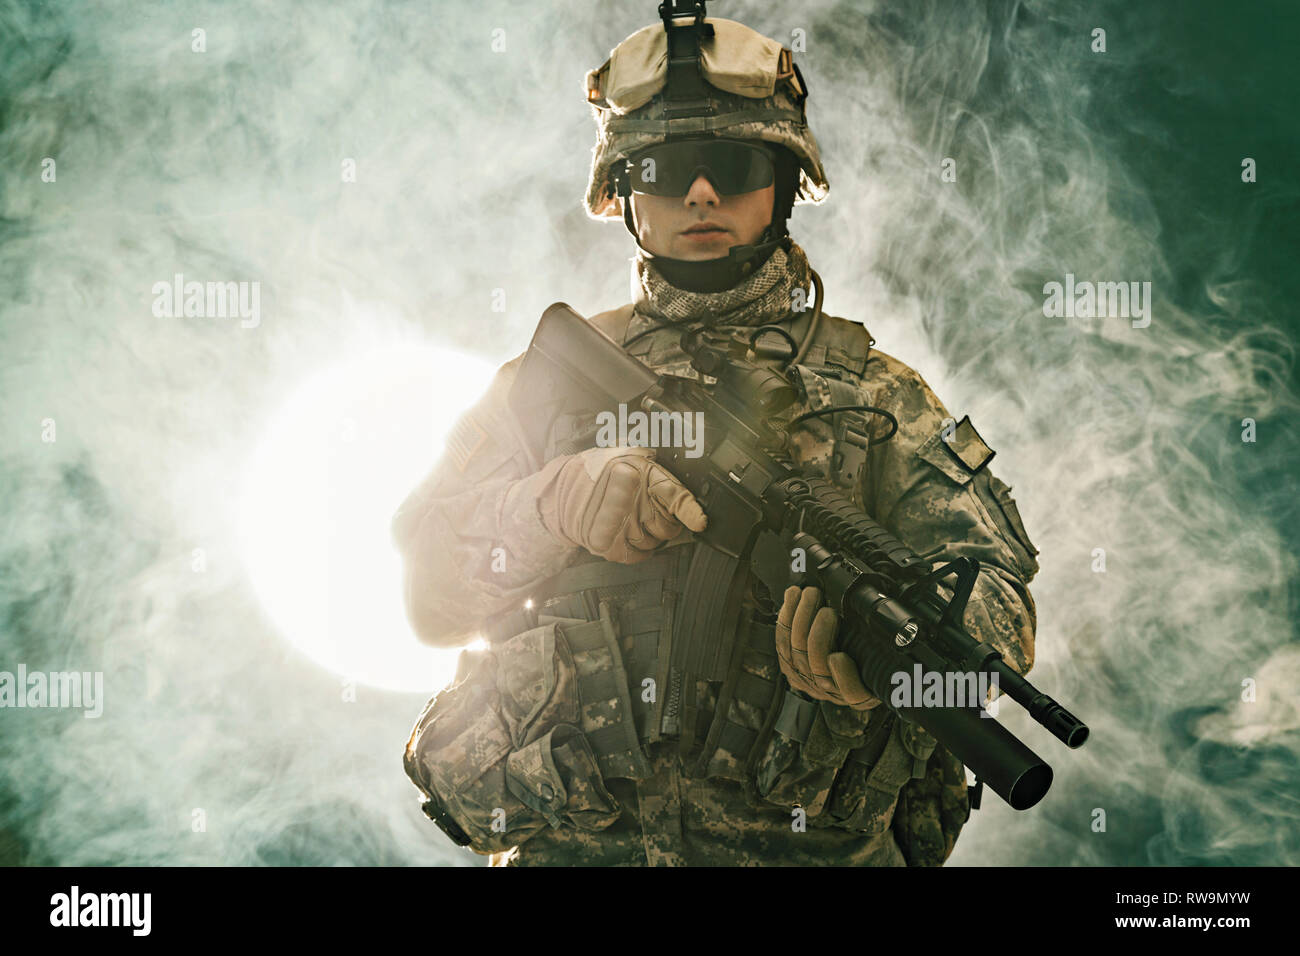 United States paratrooper airborne infantry in the smoke. Stock Photo